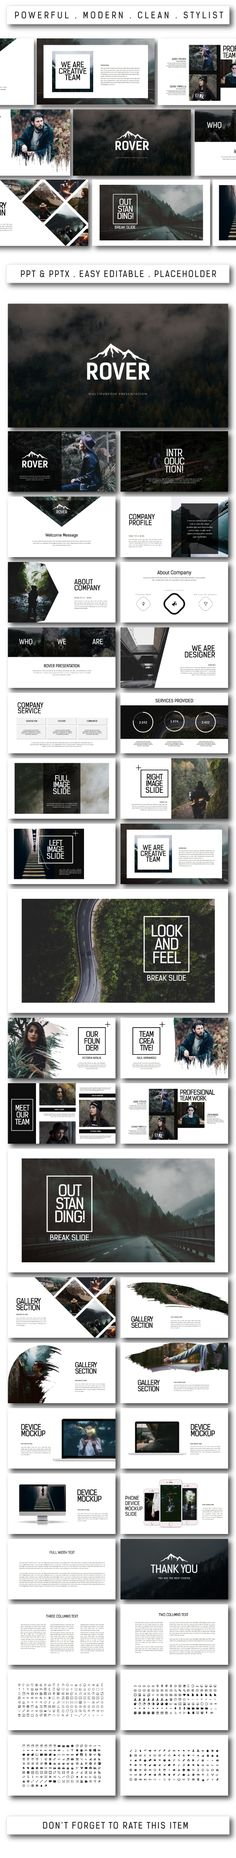 Rover Multipurpose Powerpoint Template - PowerPoint Templates Presentation Templates